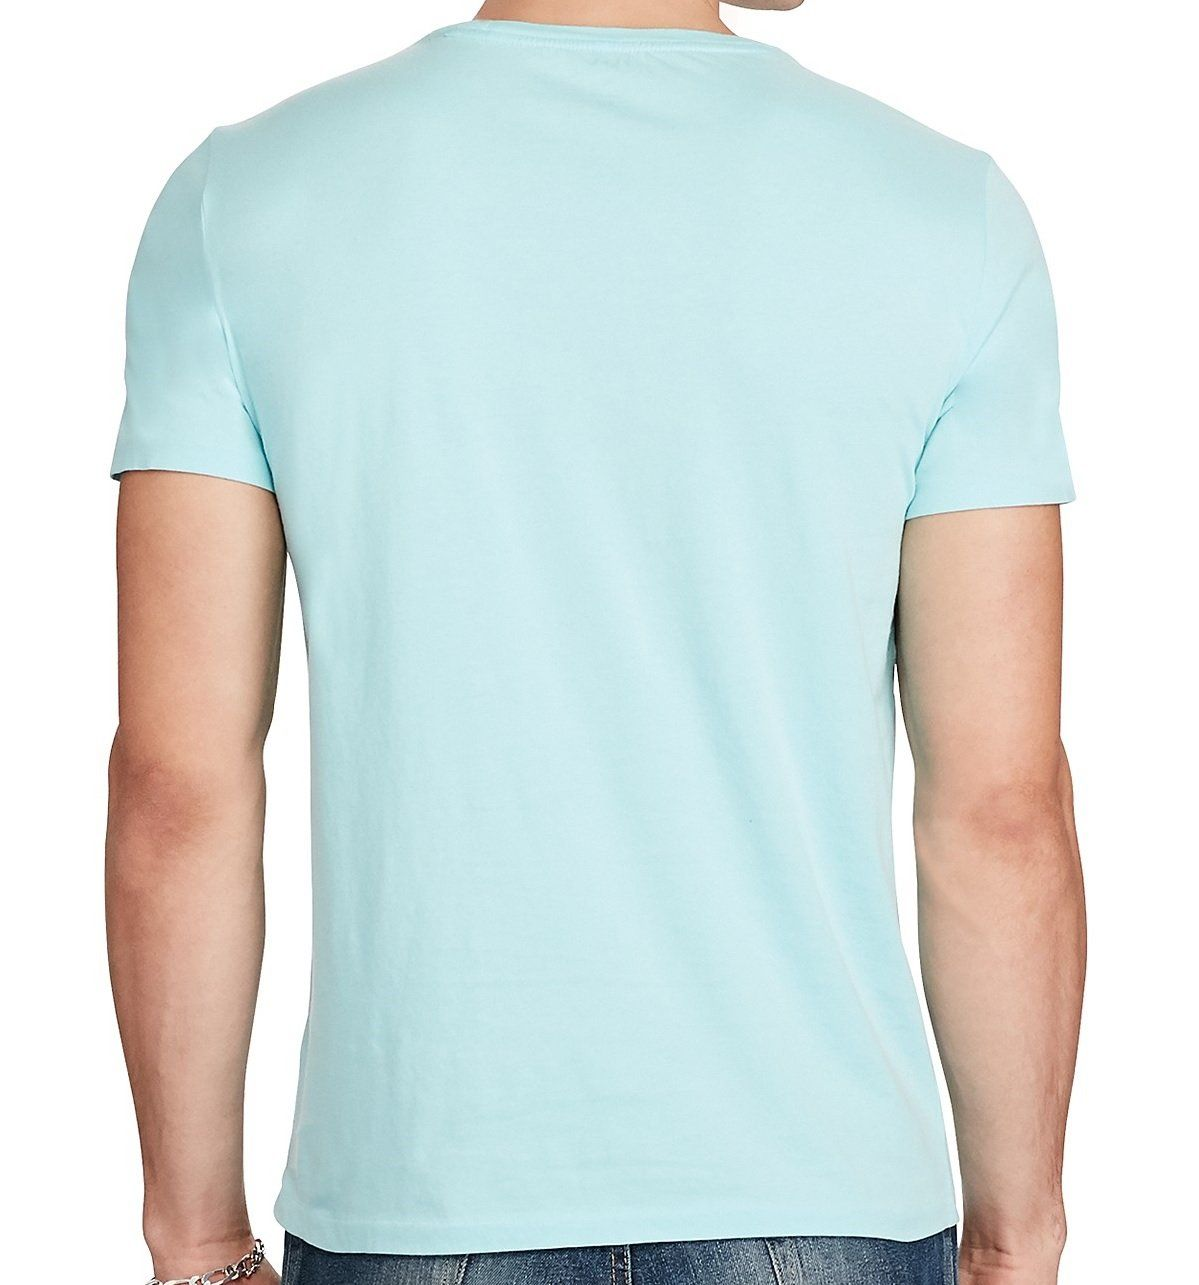 Polo Ralph Lauren Mens Cotton Jersey Pony Logo Crewneck Pocket Tee TShirt Small True Aqua -- To view further for this item, visit the image link. (This is an affiliate link) #RalphLaurenPoloShirts